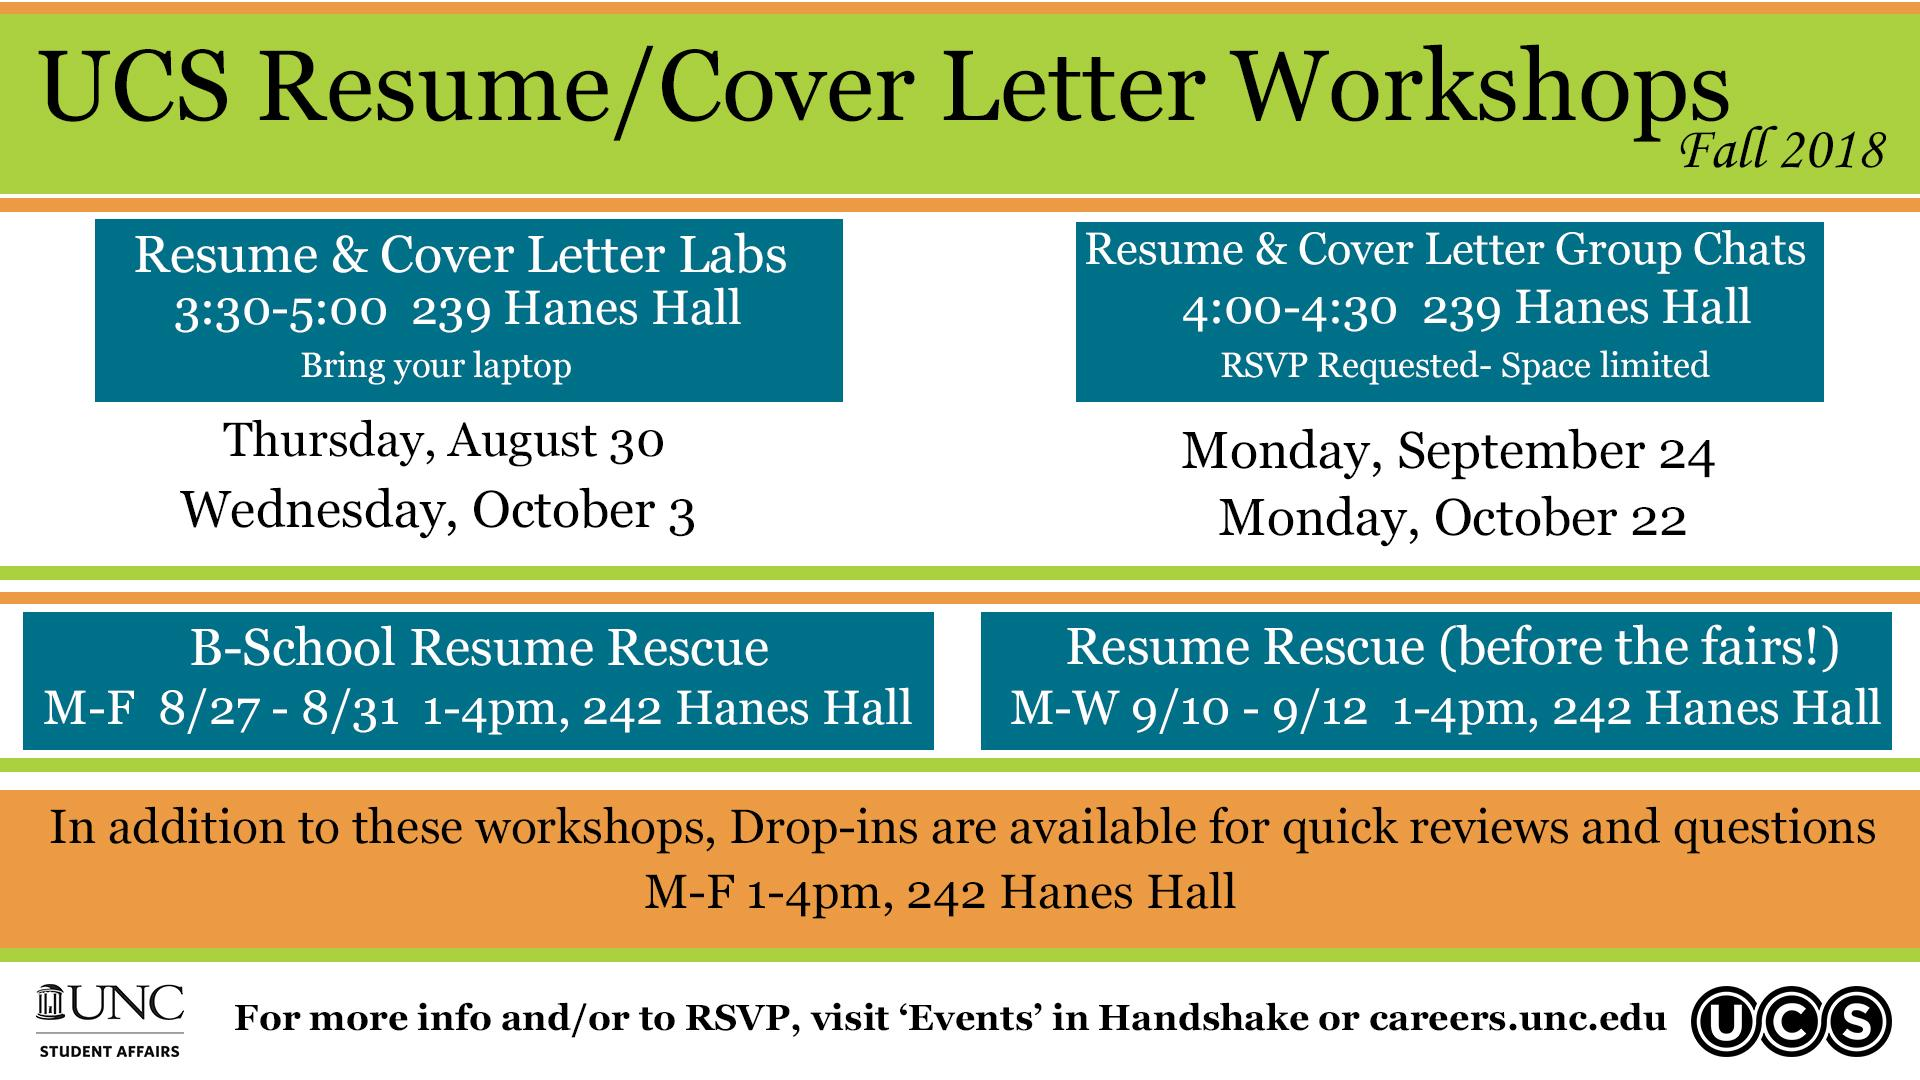 Ucs Resume Cover Letter Workshops Fall 2018 Updated Digital